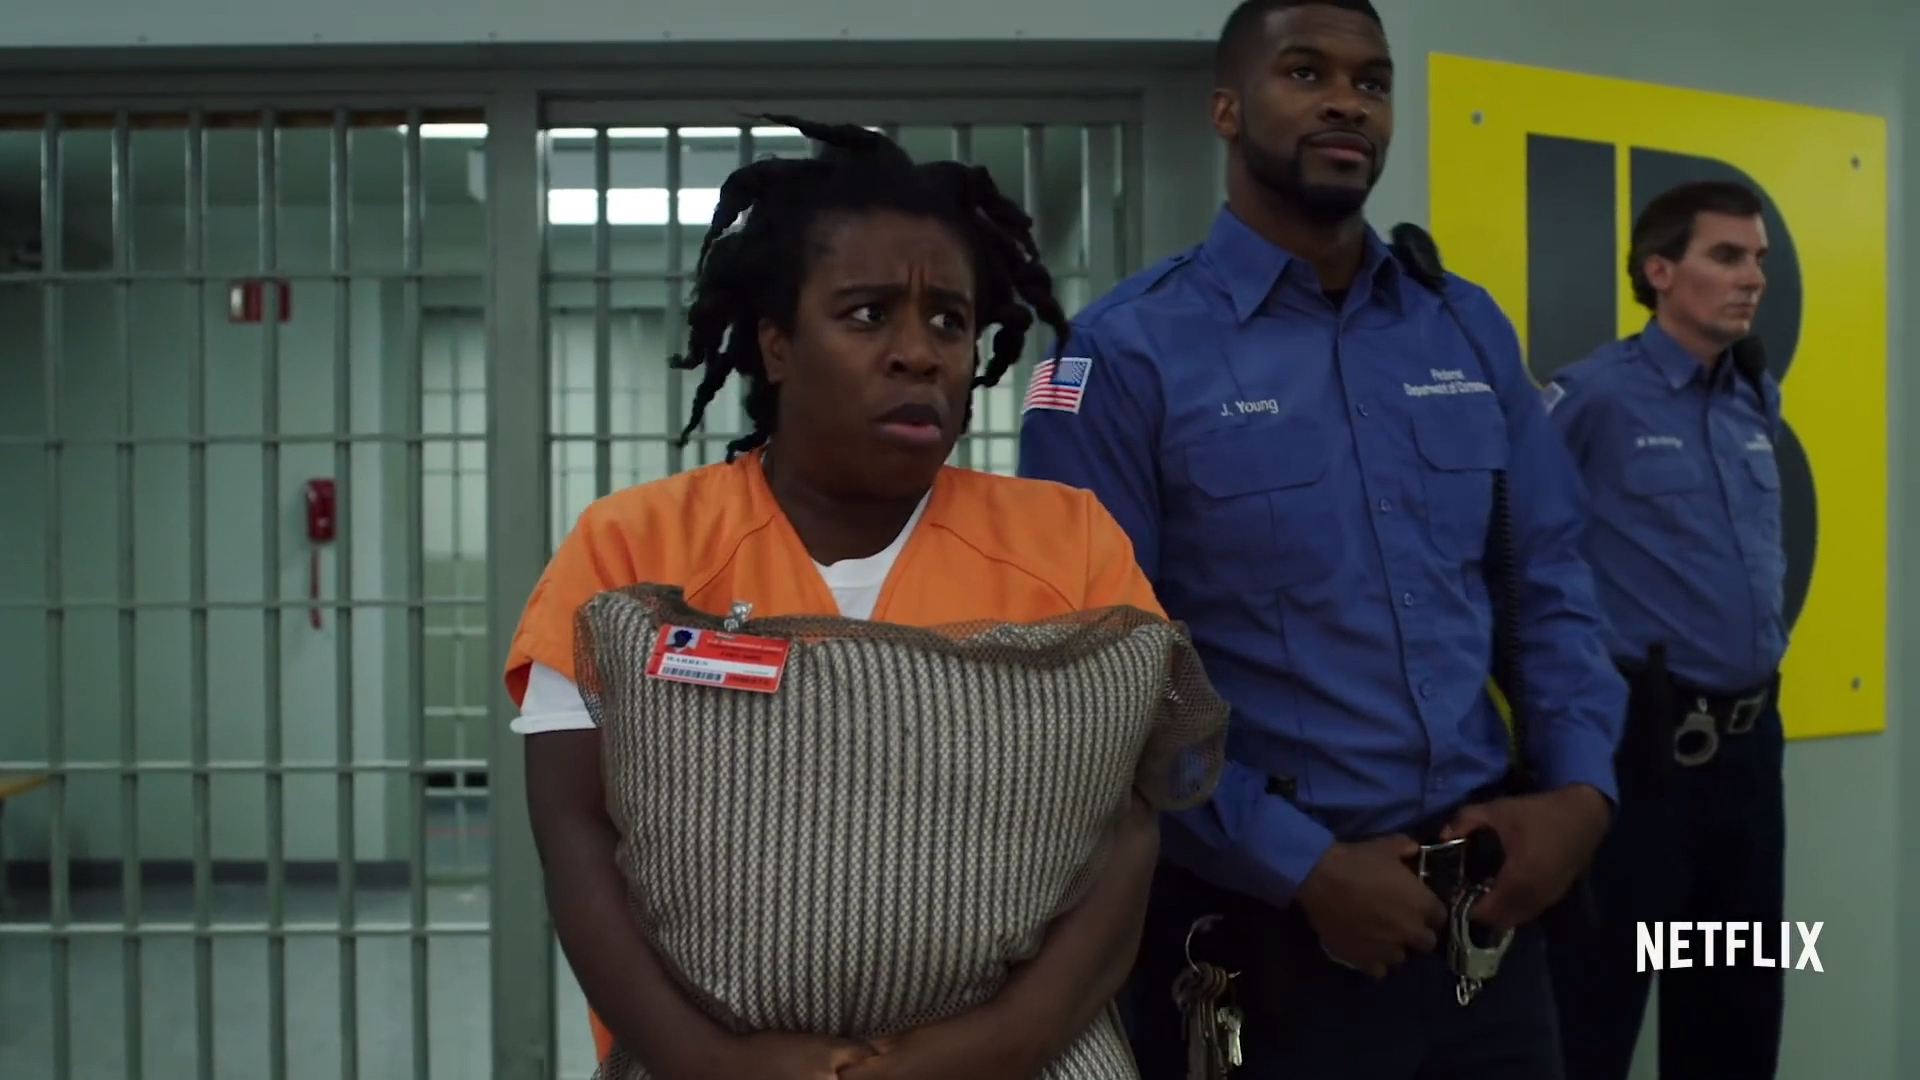 'Orange Is the New Black' Season 6 trailer